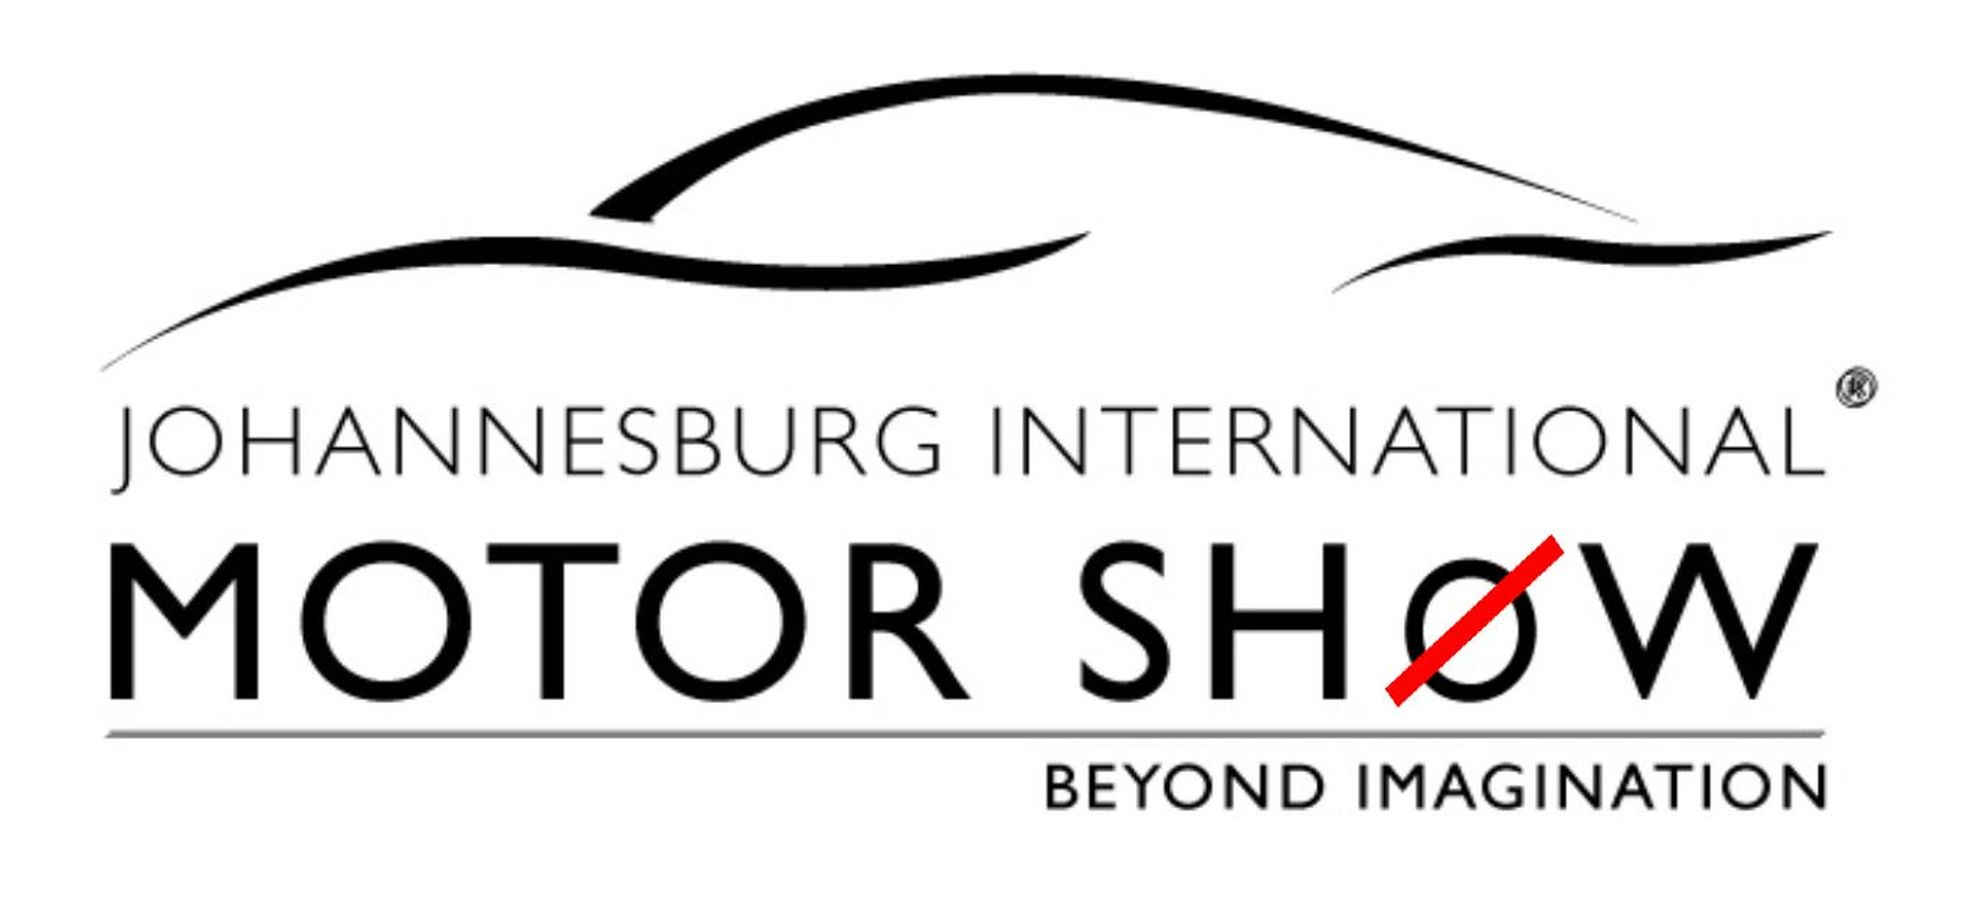 Johannesburg-International-Motor-Show-in-South-Africa-cancelled